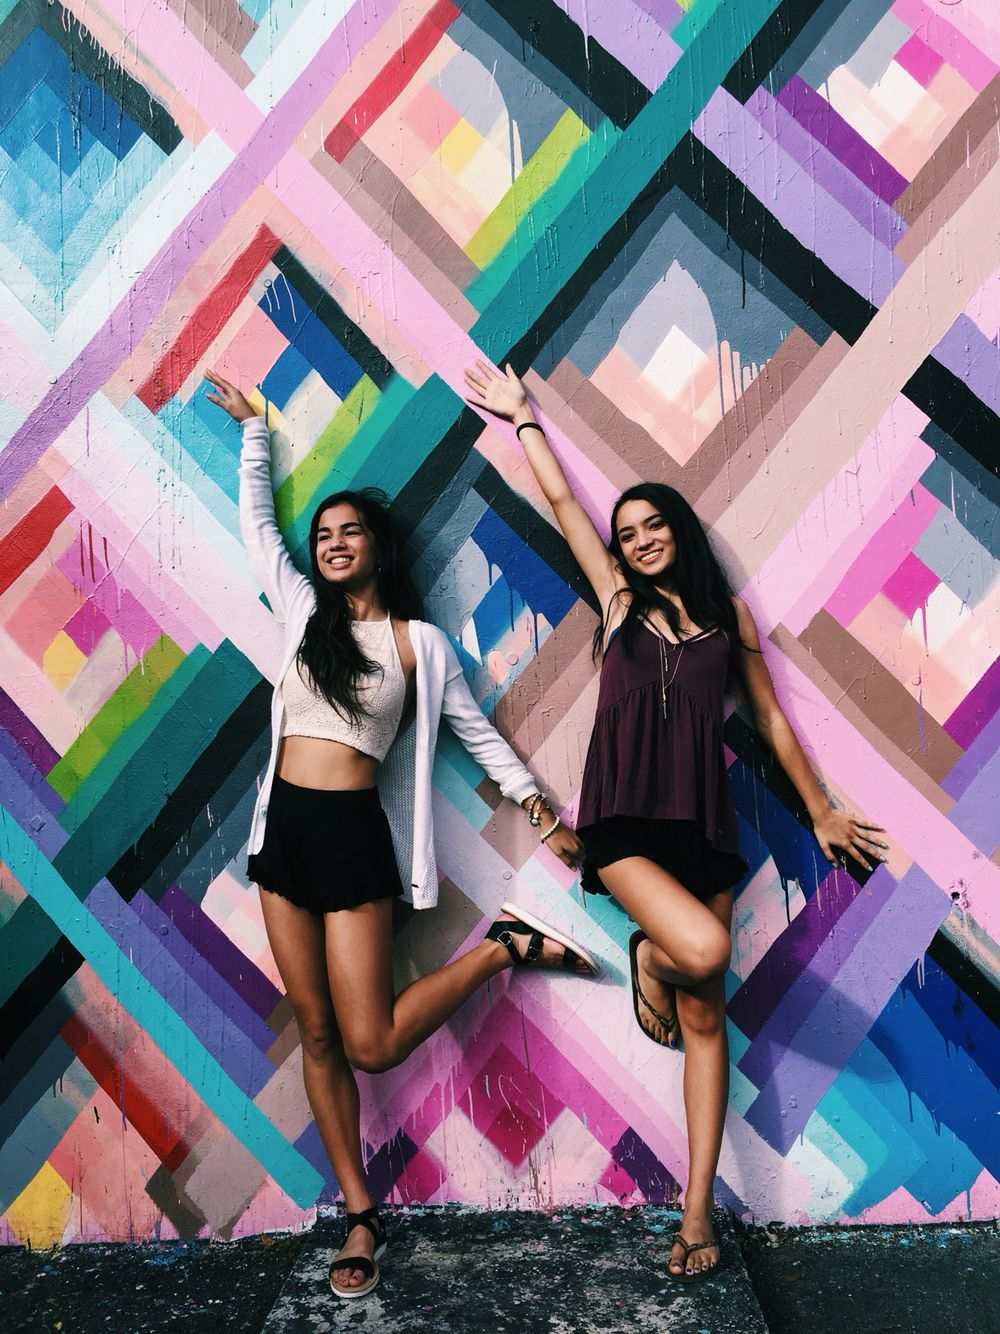 Wynwood Walls Miami FL | Pretty pictures | Pinterest ...